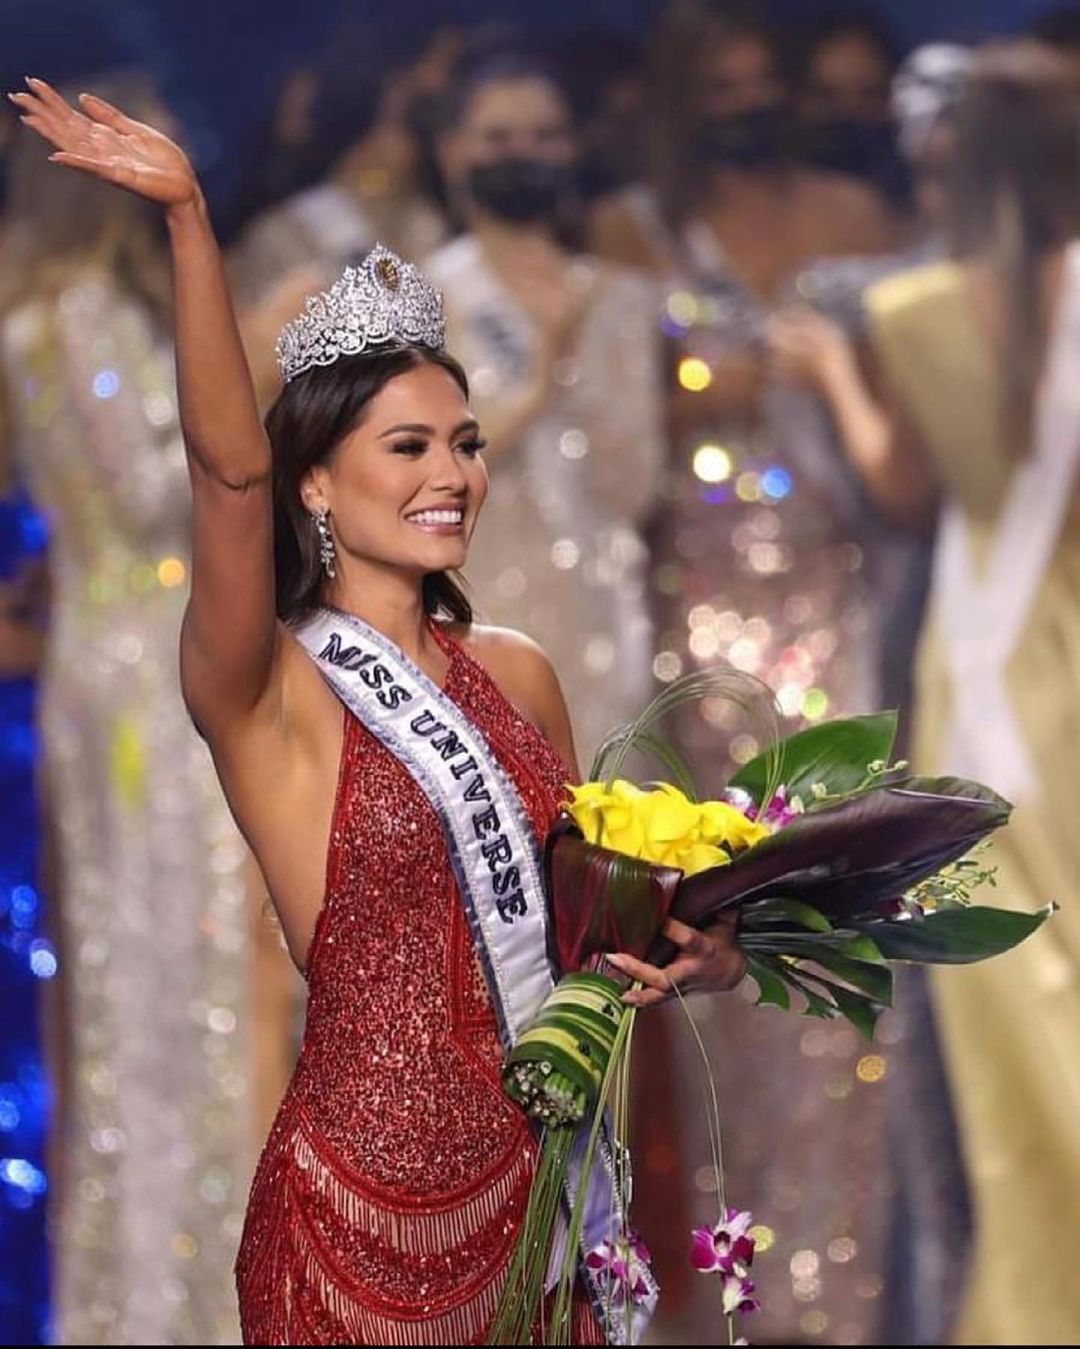 What does Miss Universe 2020 win?